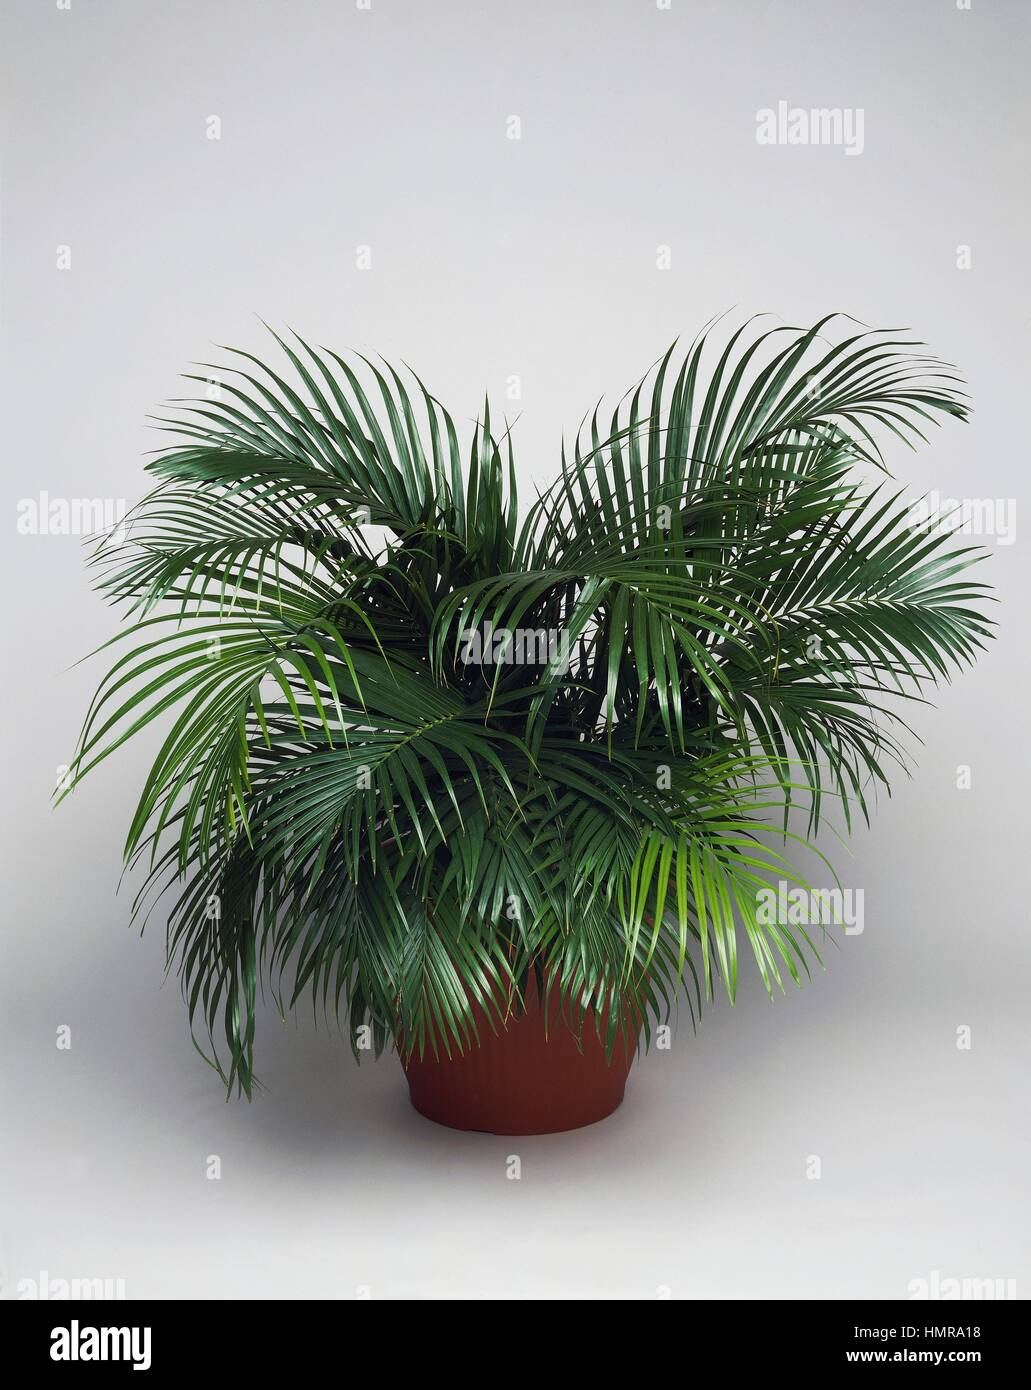 Yellow Palm Areca Palm Chrysalidocarpus Lutescens Dypsis Lutescens Stock Photos And Dypsis Lutescens Stock